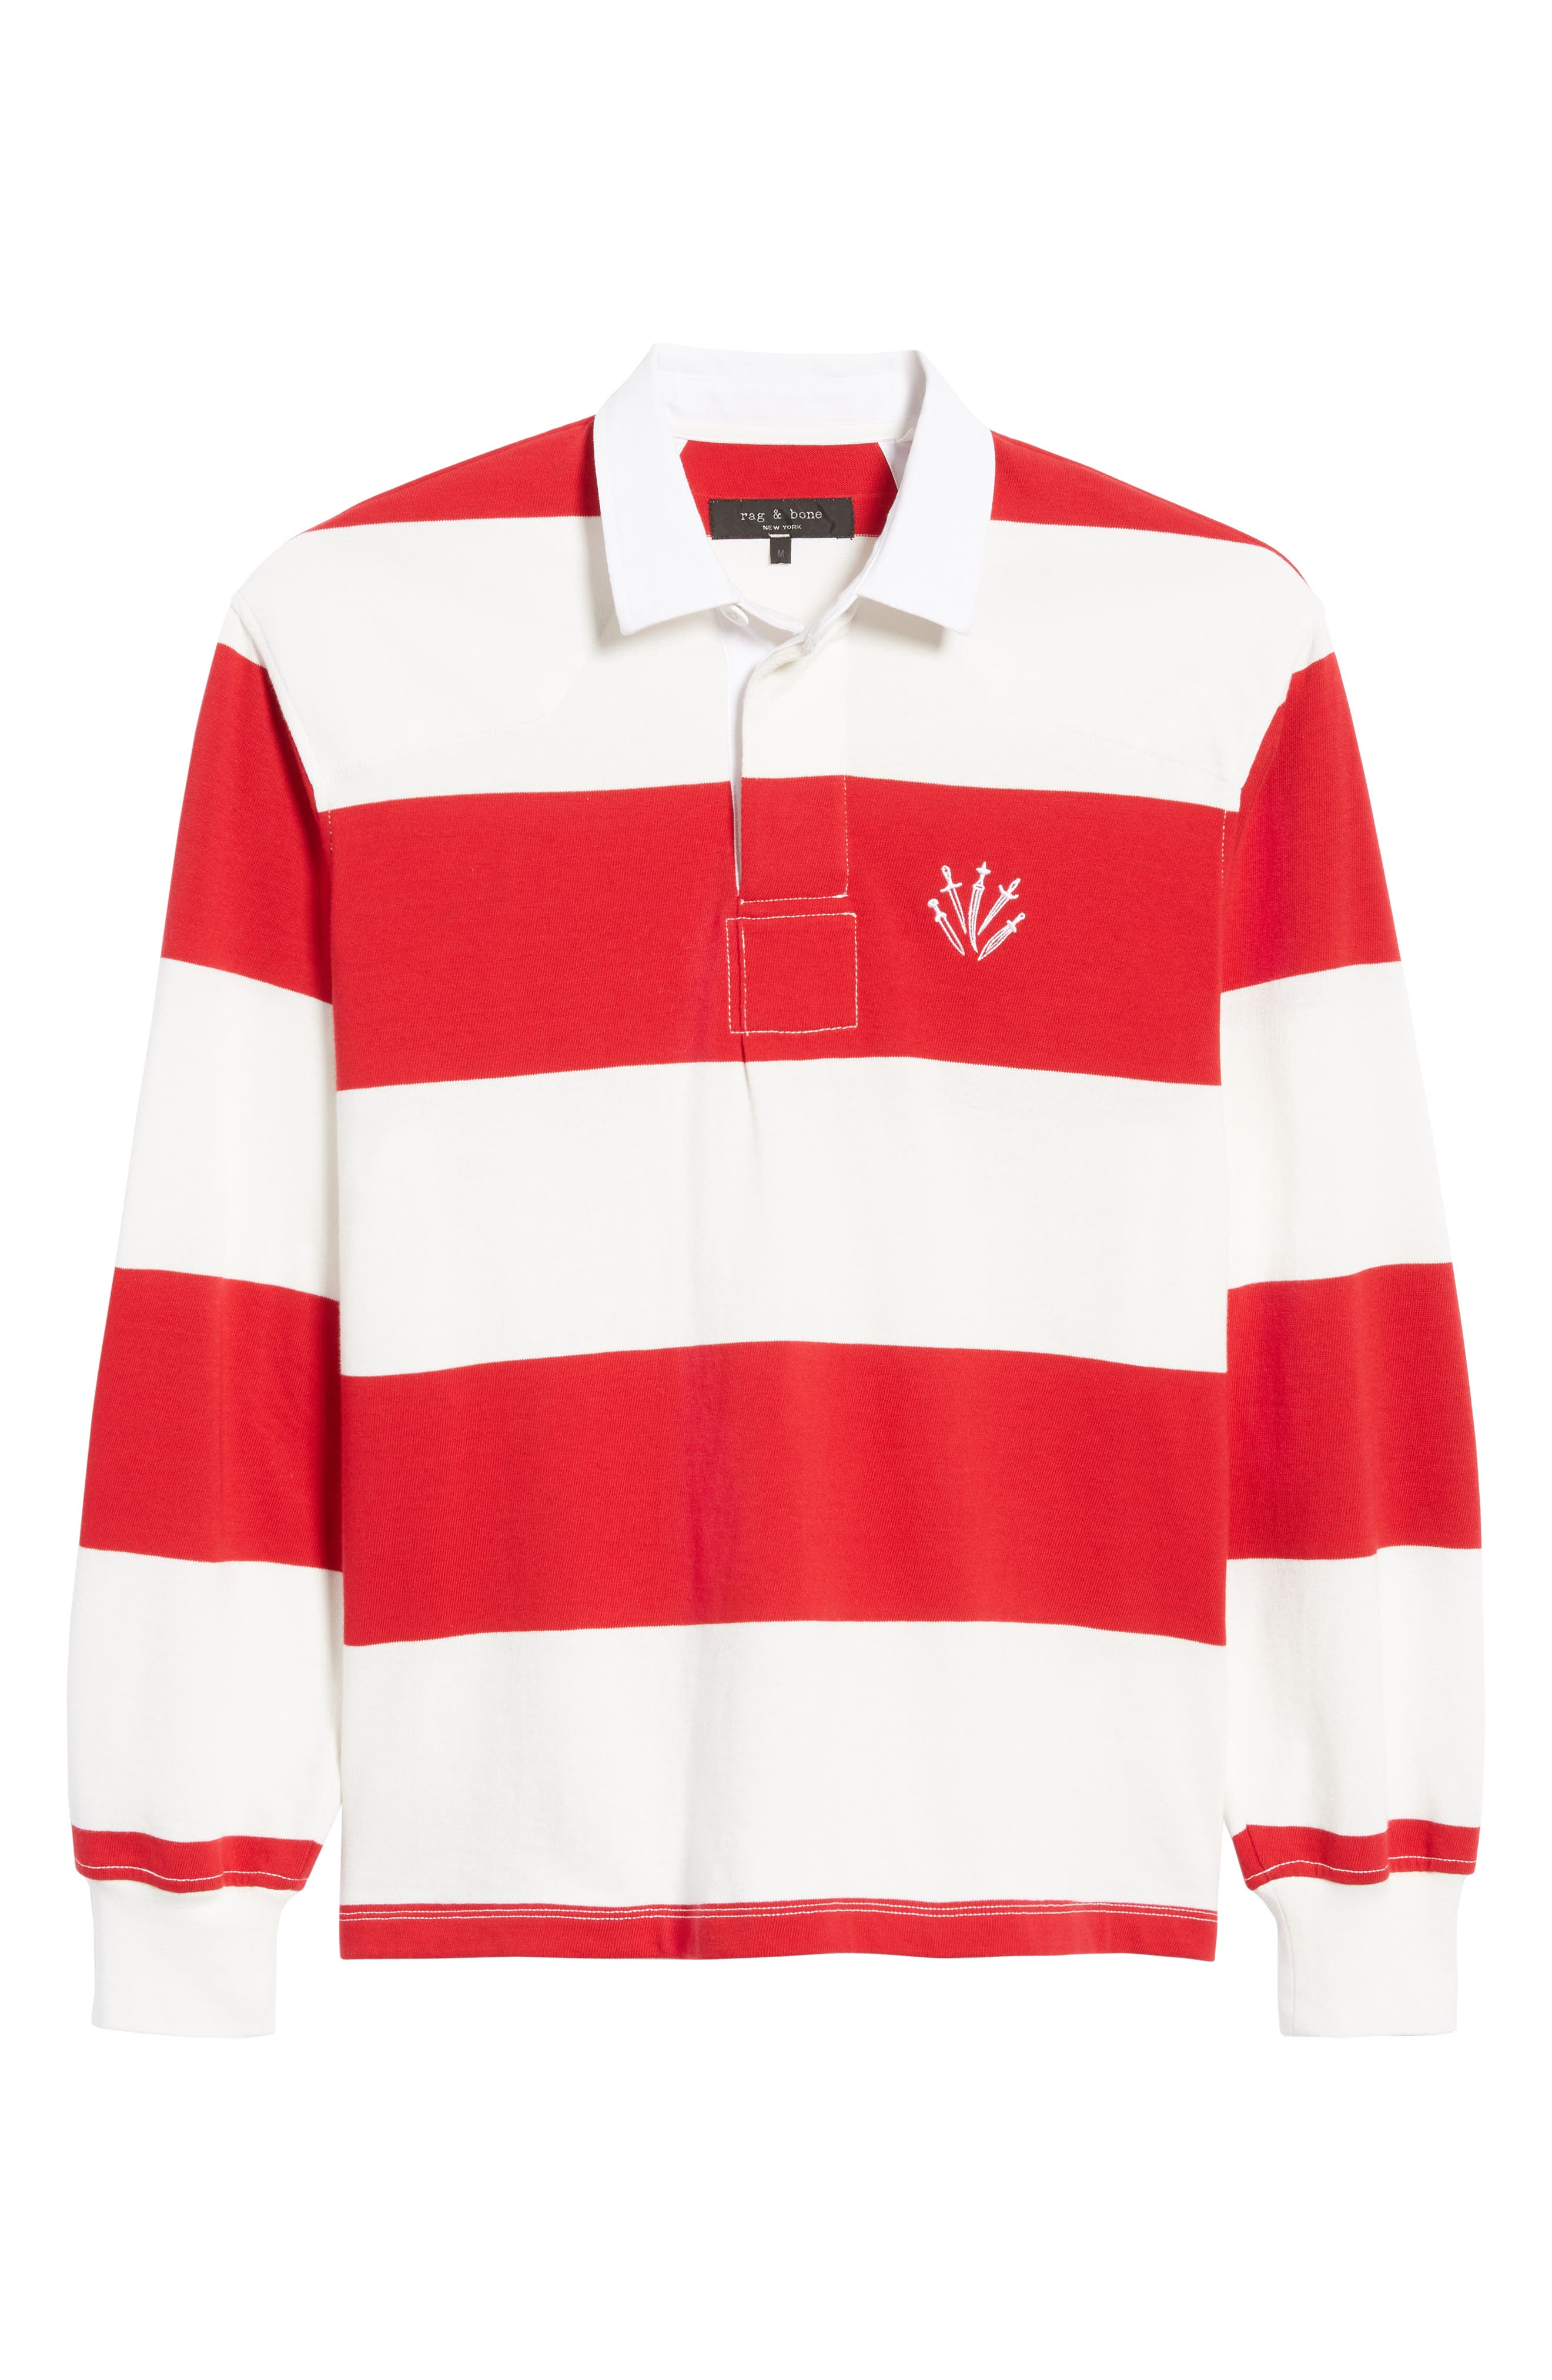 Regular Fit Rugby Shirt,                             Alternate thumbnail 6, color,                             RED/ IVORY